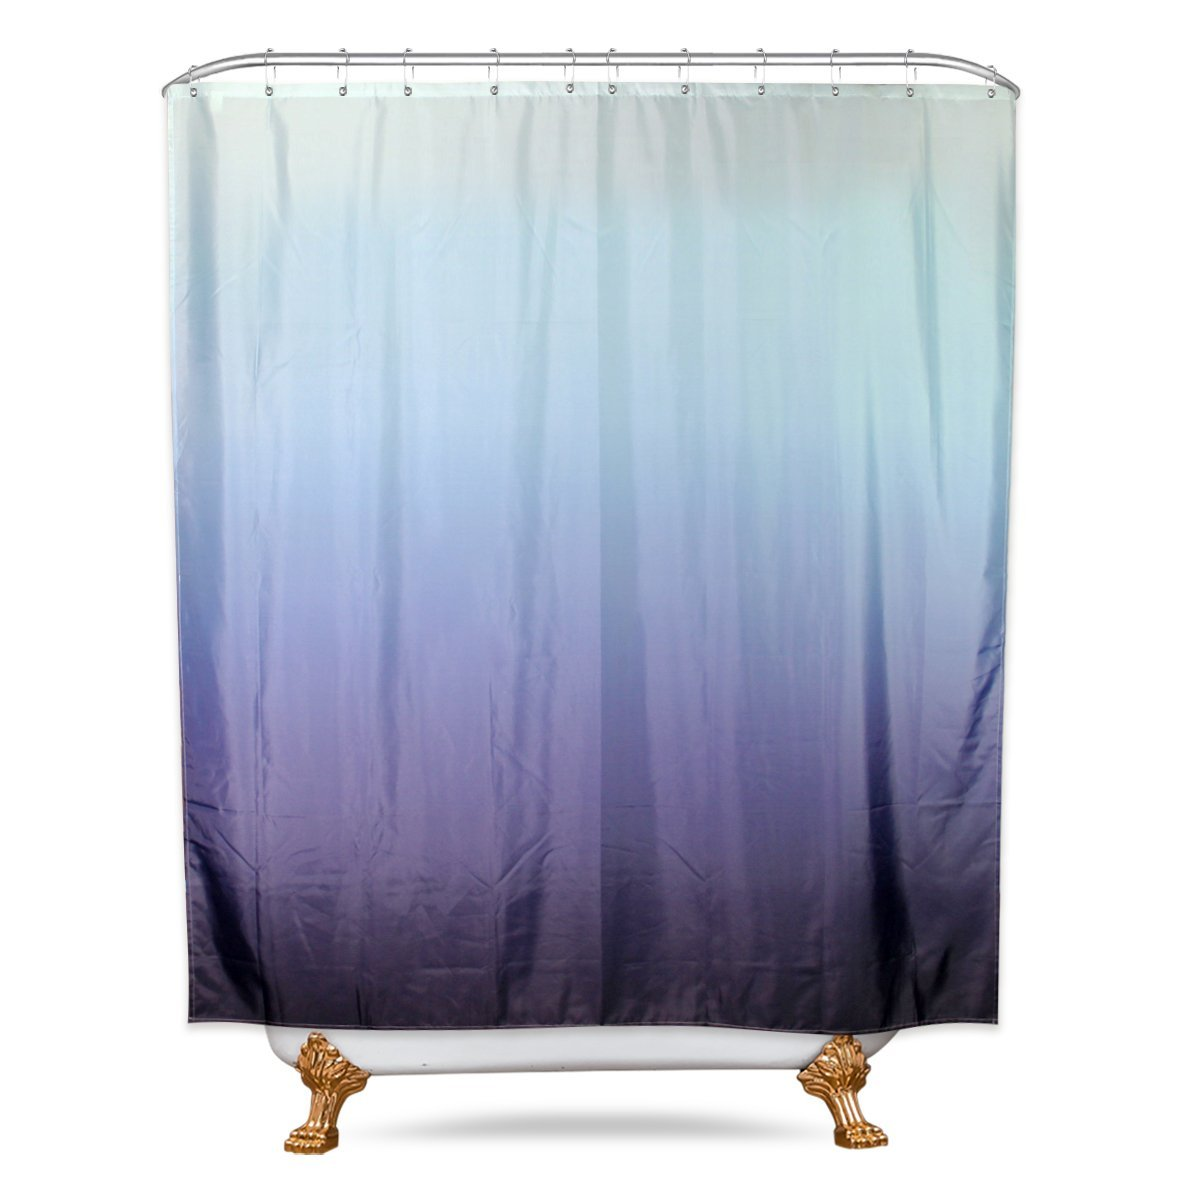 Riyidecor Ombre Blue Shower Curtain Panel 72x84 Inch Extra Long With Metal Hooks 12 Pack Modern Fashion Pure Decor Fabric Bathroom Set Polyester Waterproof